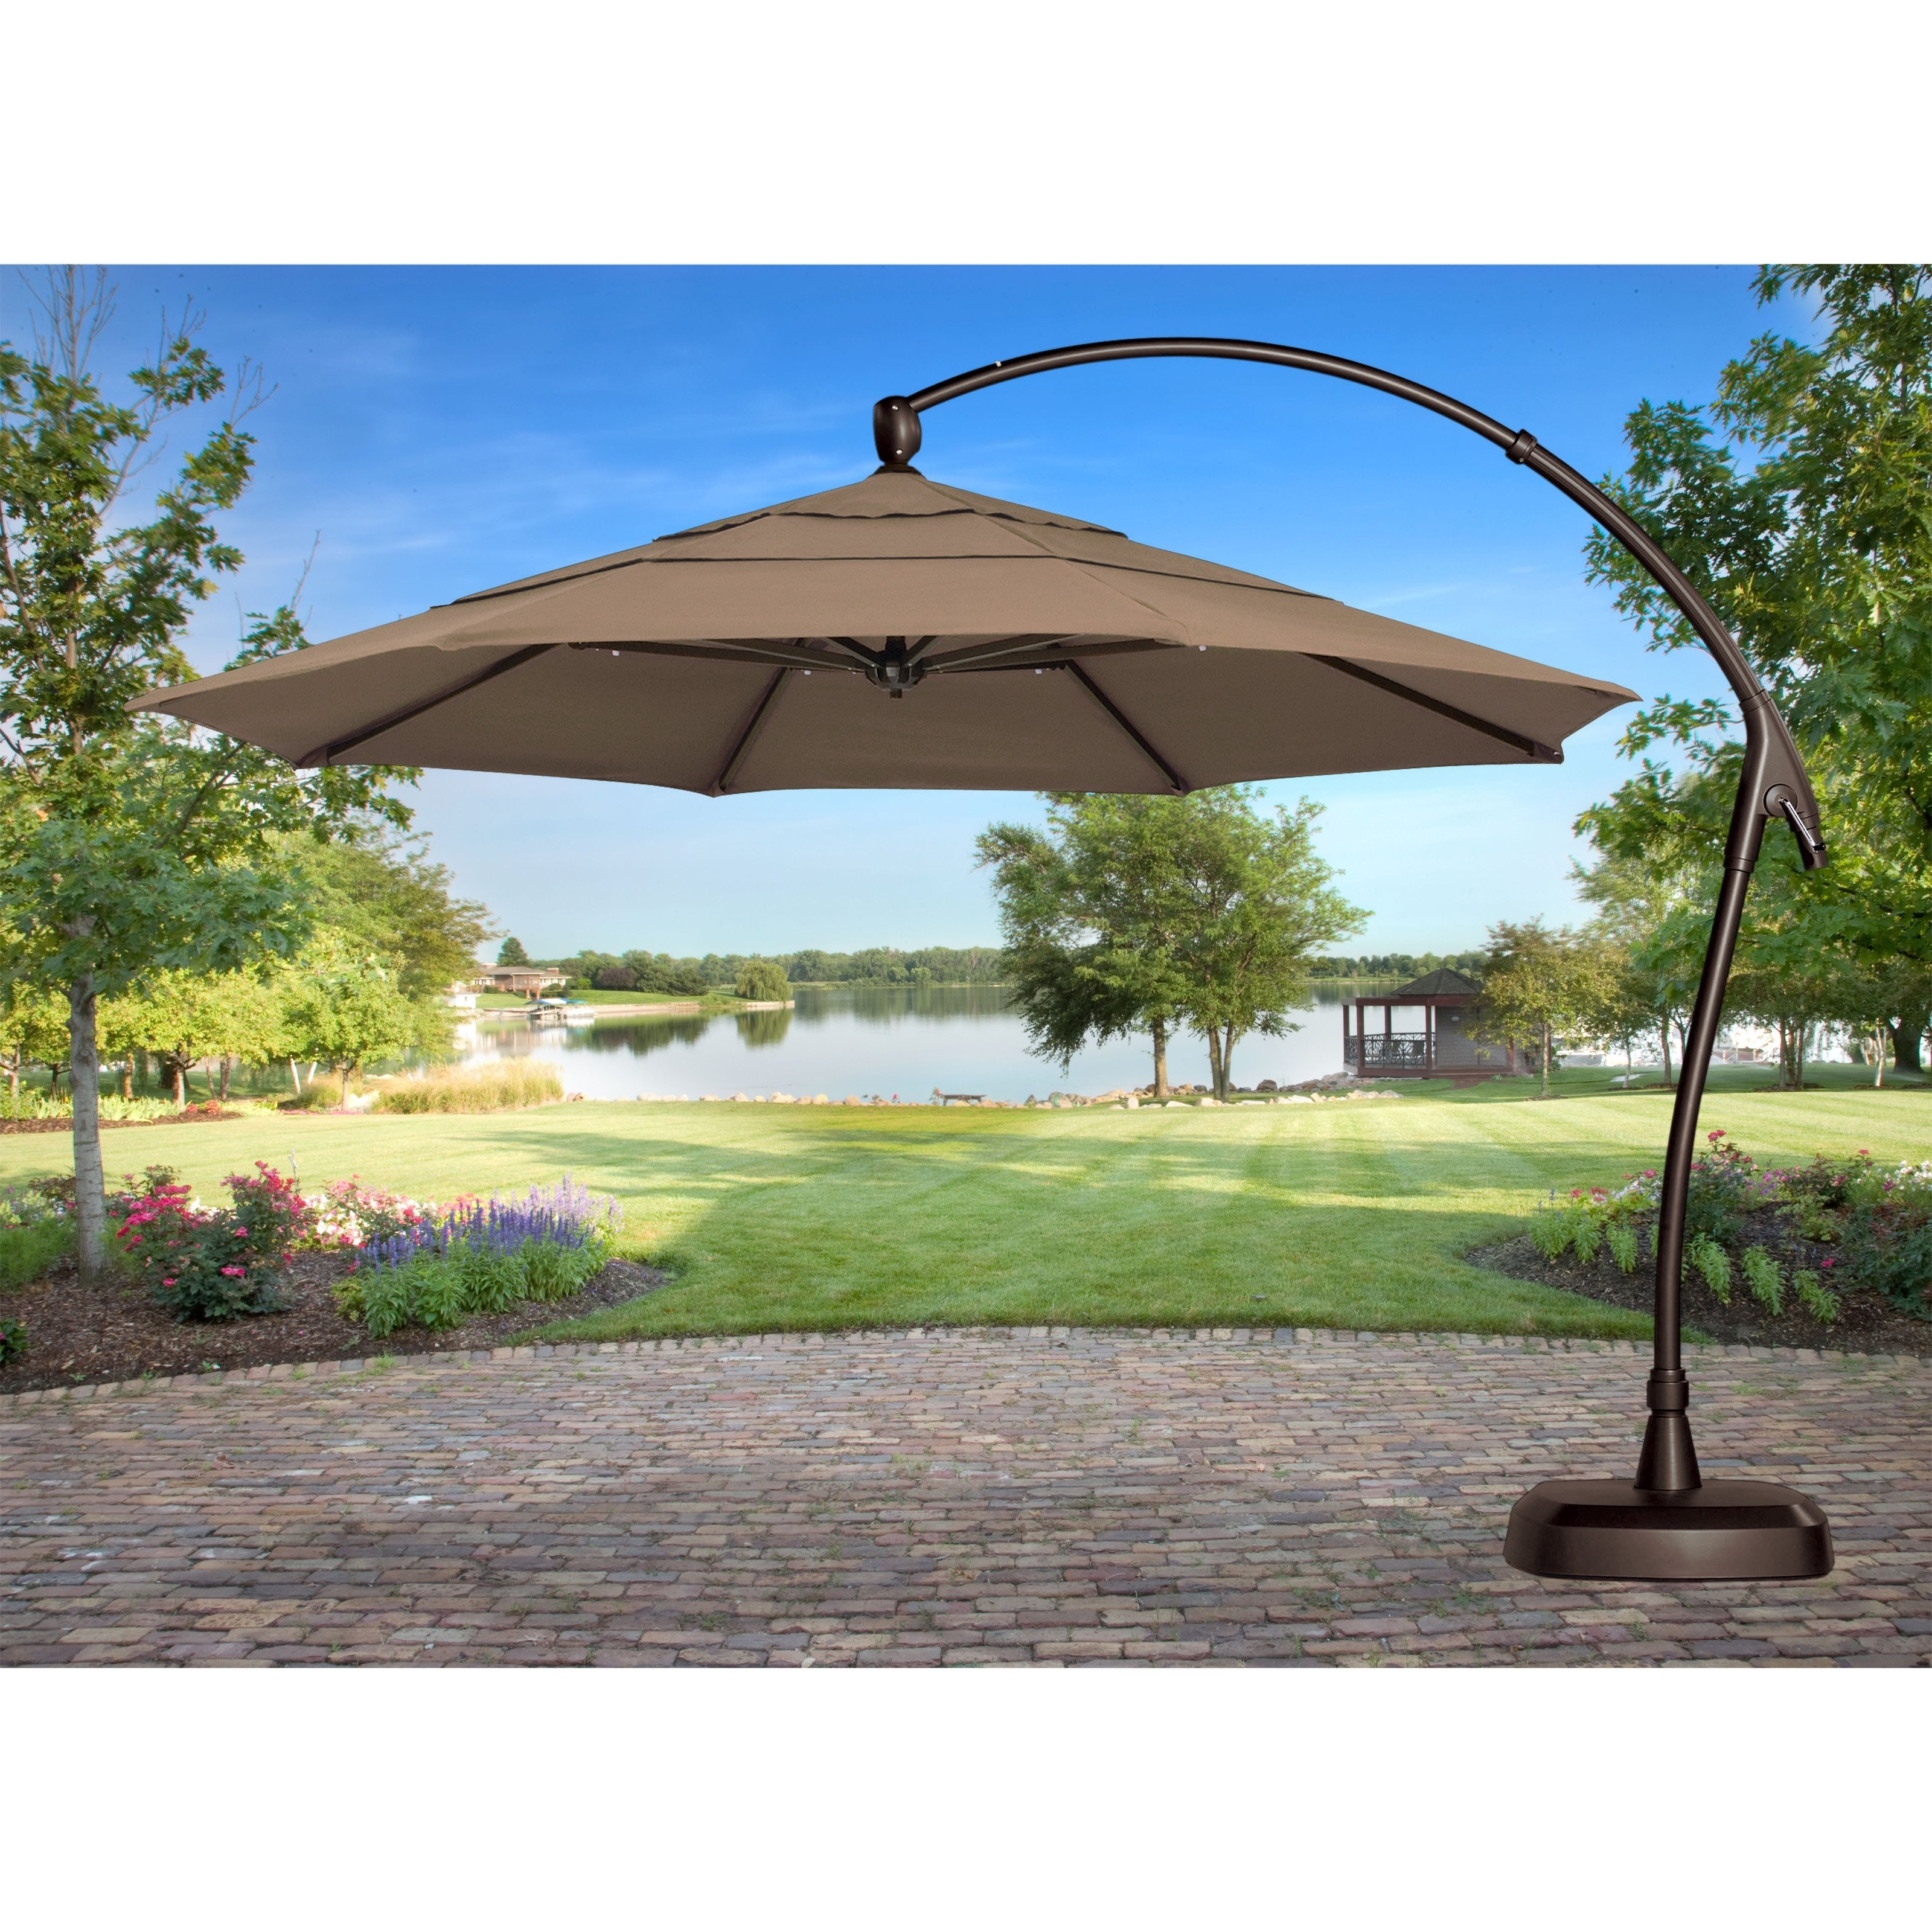 Stylish And Convenient Cantilever Patio Umbrella – Carehomedecor Inside Preferred Patio Umbrellas With Fans (View 6 of 20)